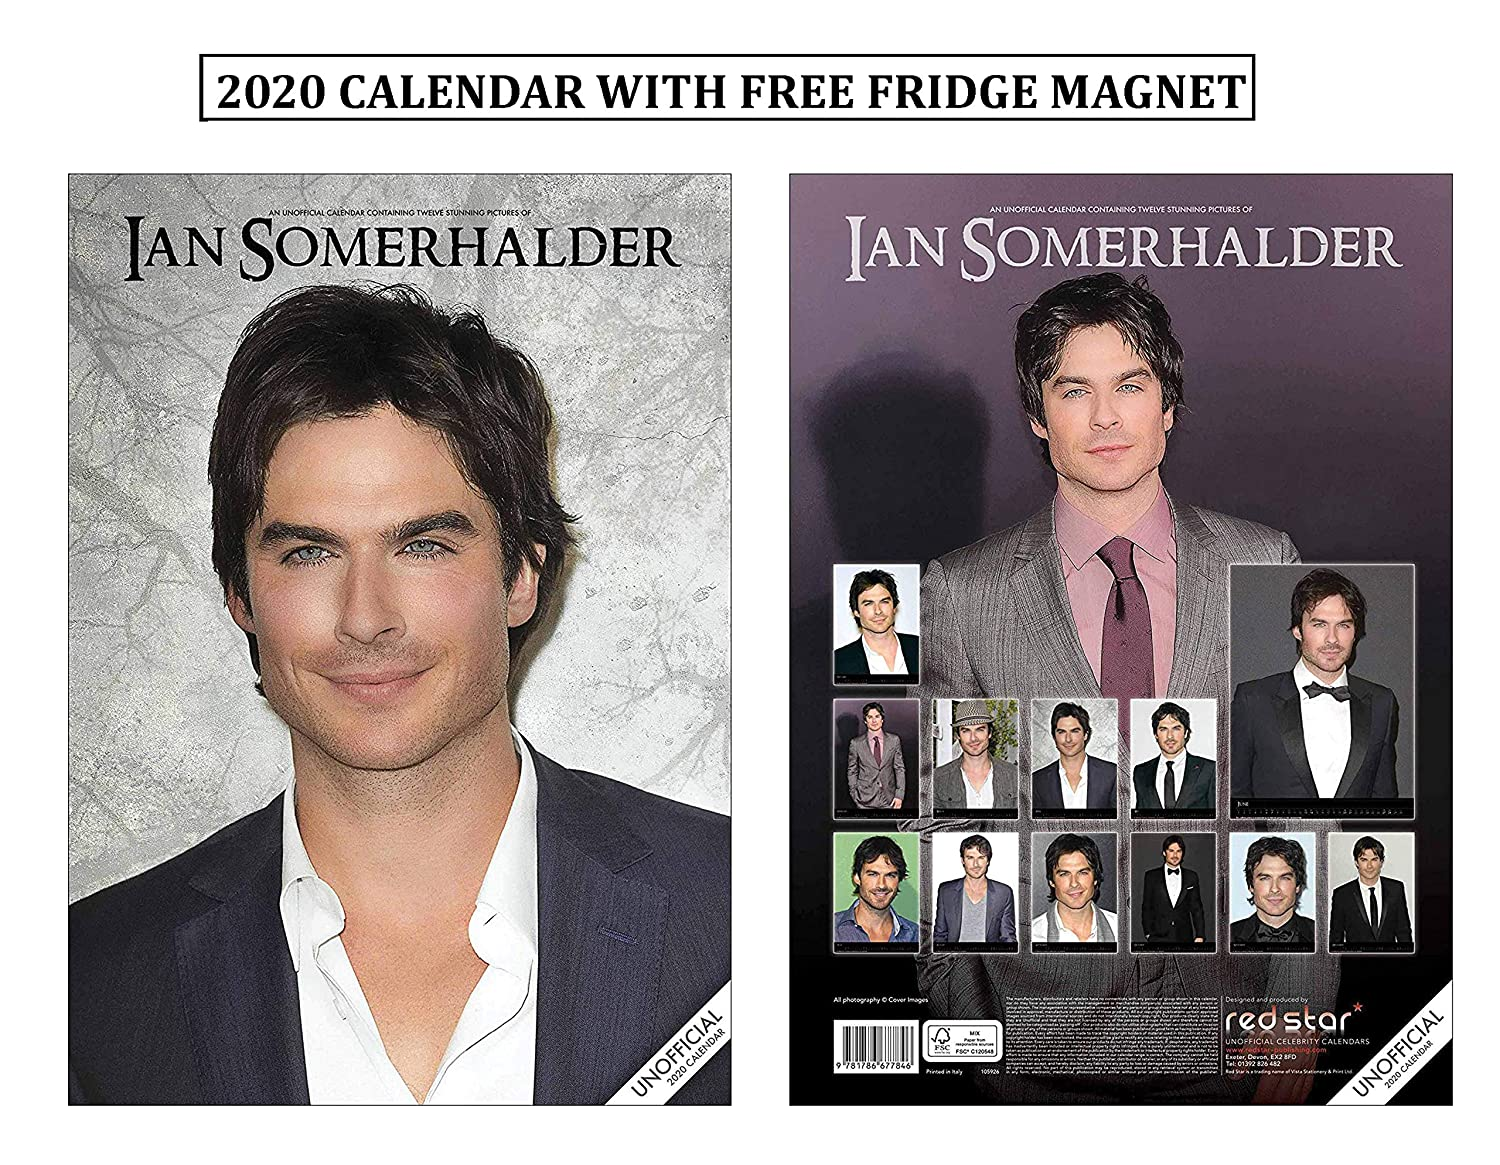 Ian Somerhalder Calendario 2020 With Ian Somerhalder Imán para ...